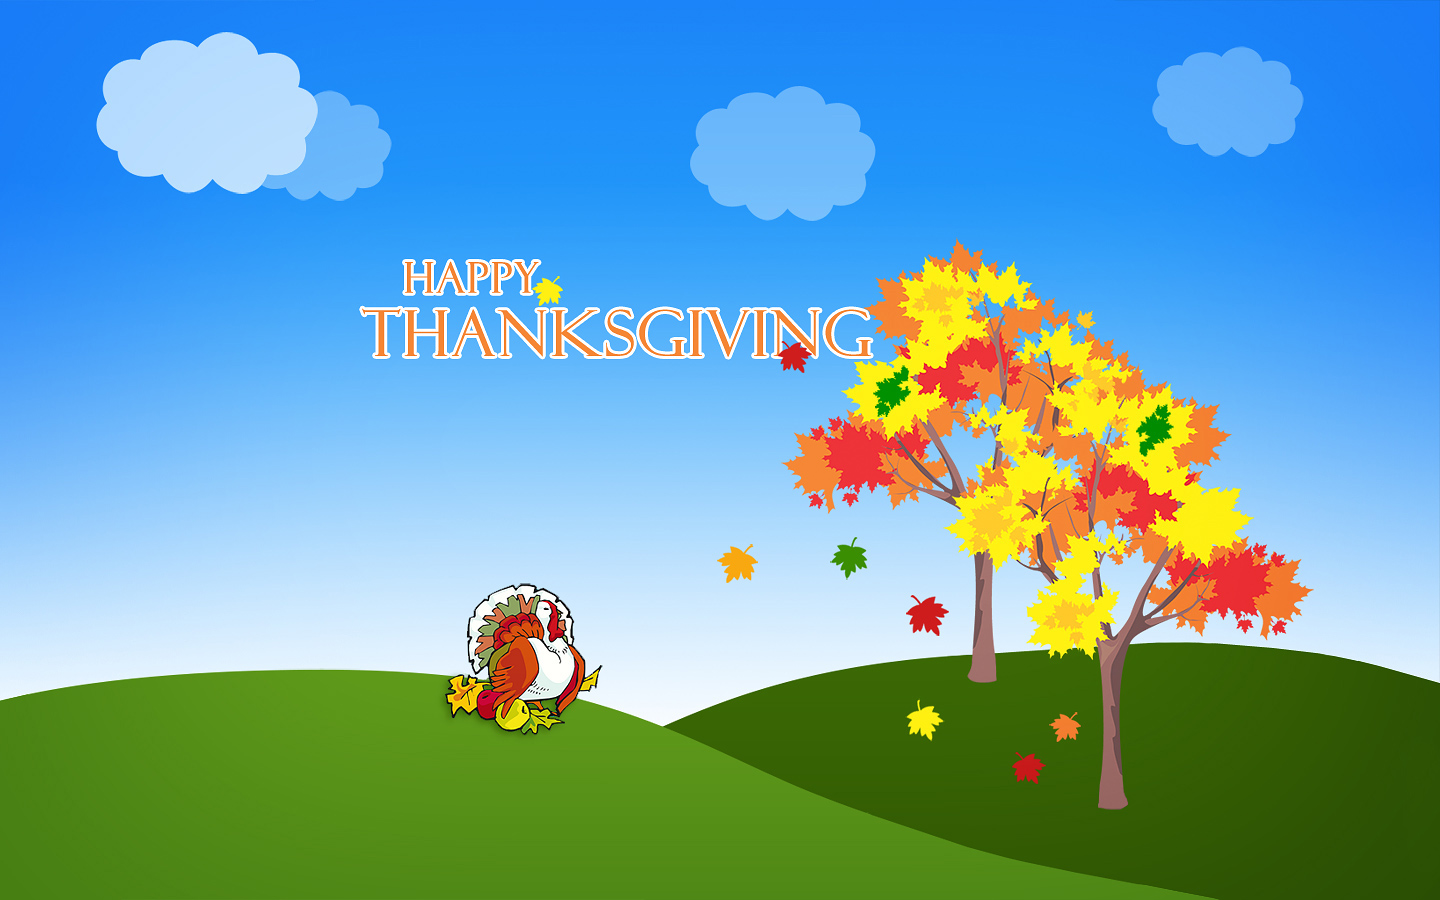 download Thanksgiving Desktop Wallpaper PixelsTalk 1440x900